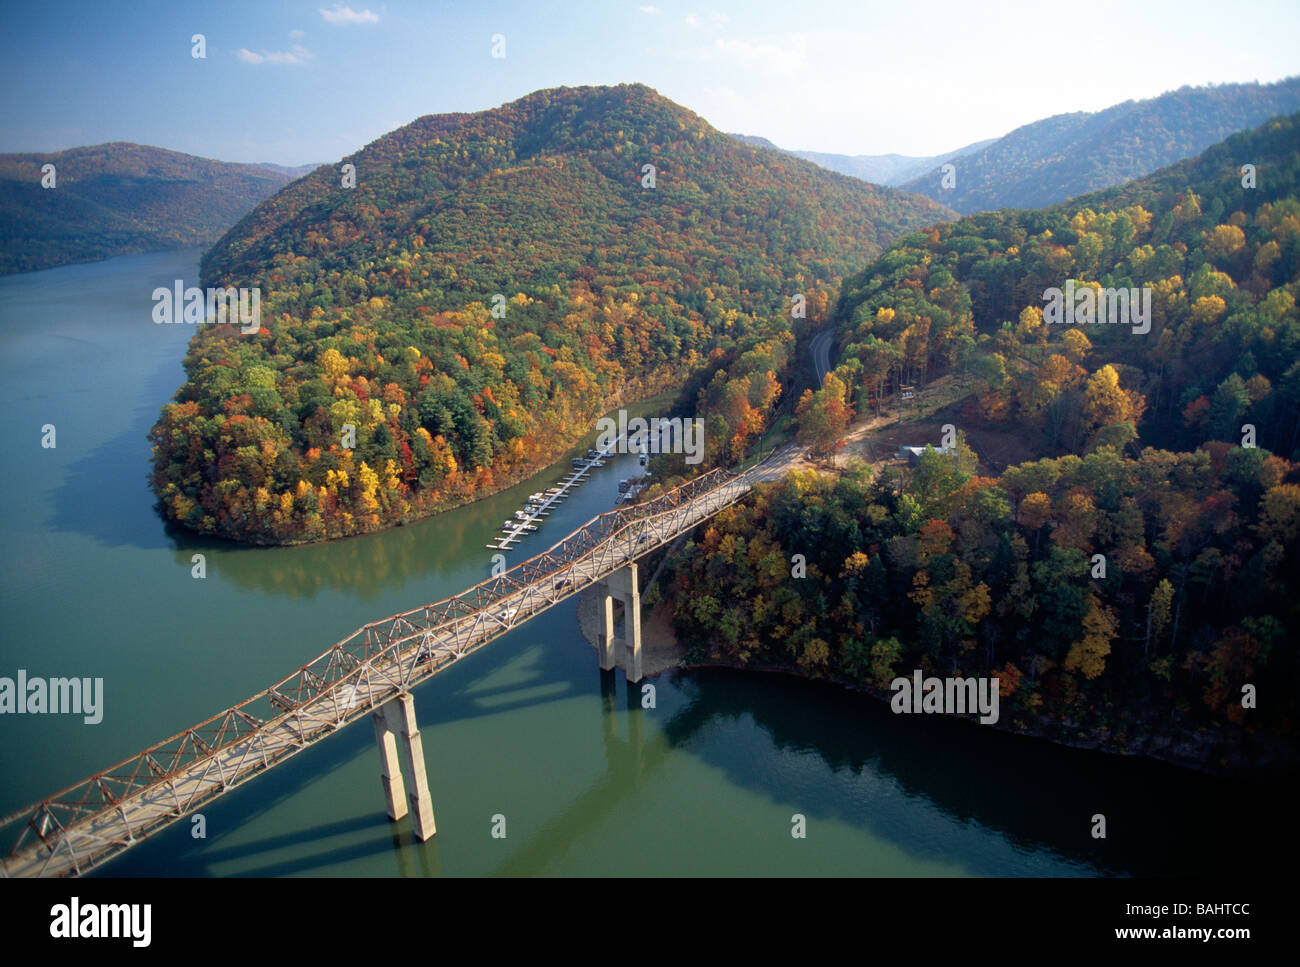 Aerial View Of Fall Foliage And Bluestone River Near